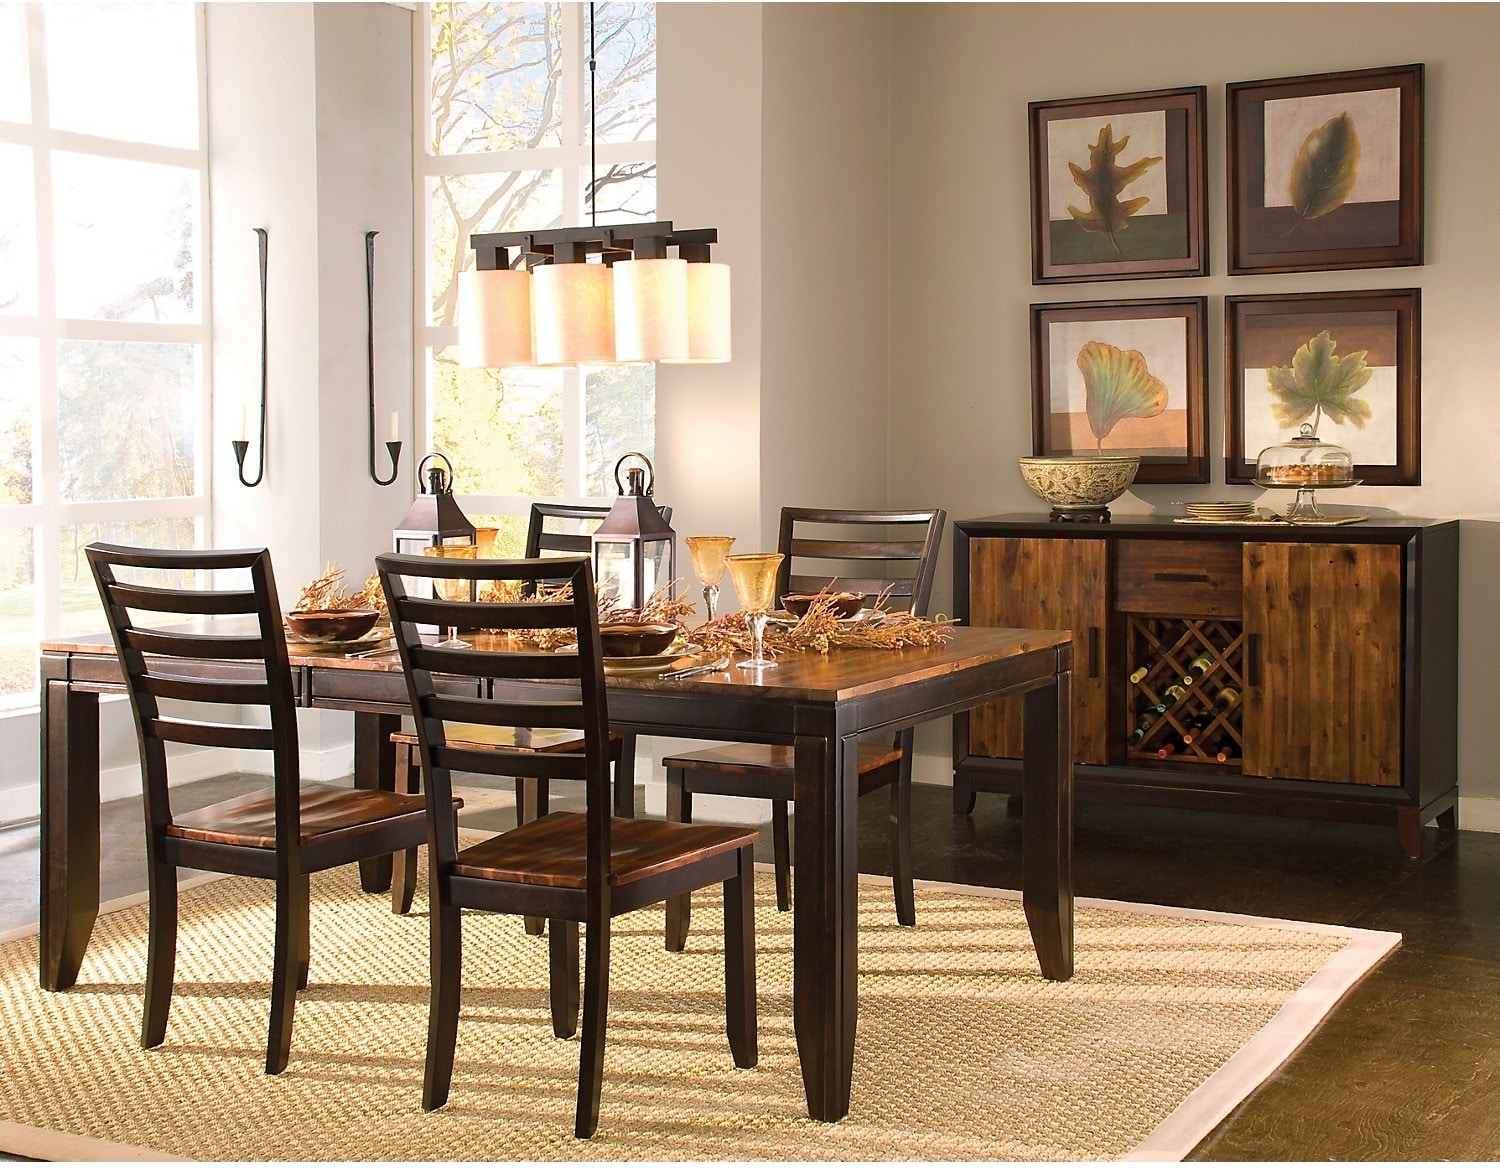 Dining Room Furniture - Zara 5-Piece Dining Package